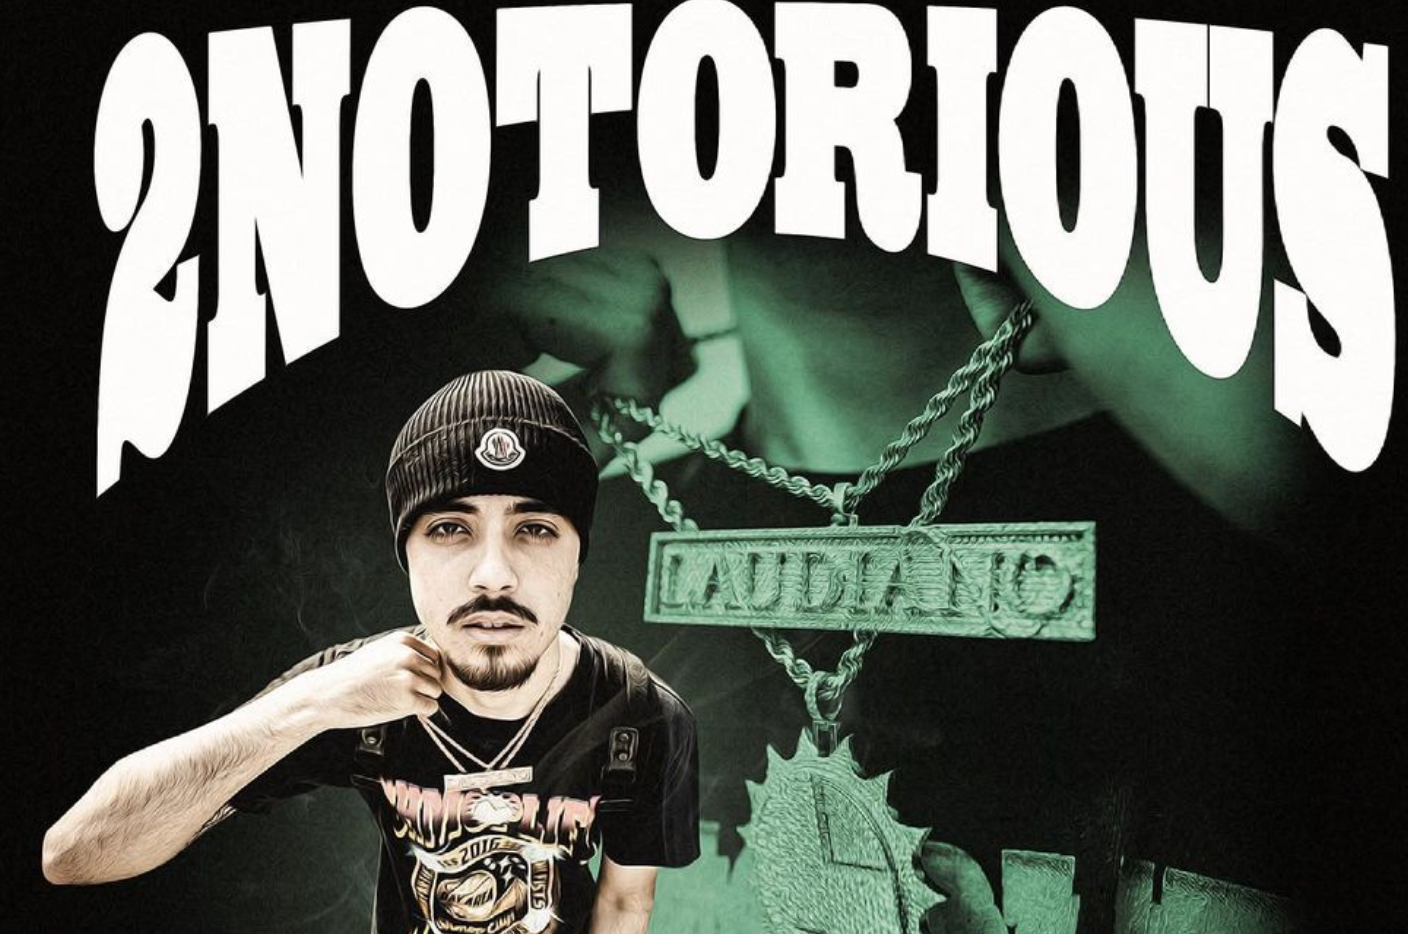 Laudiano Is Carving Out His Legacy With His L.A. Facing '2Notorious' Album